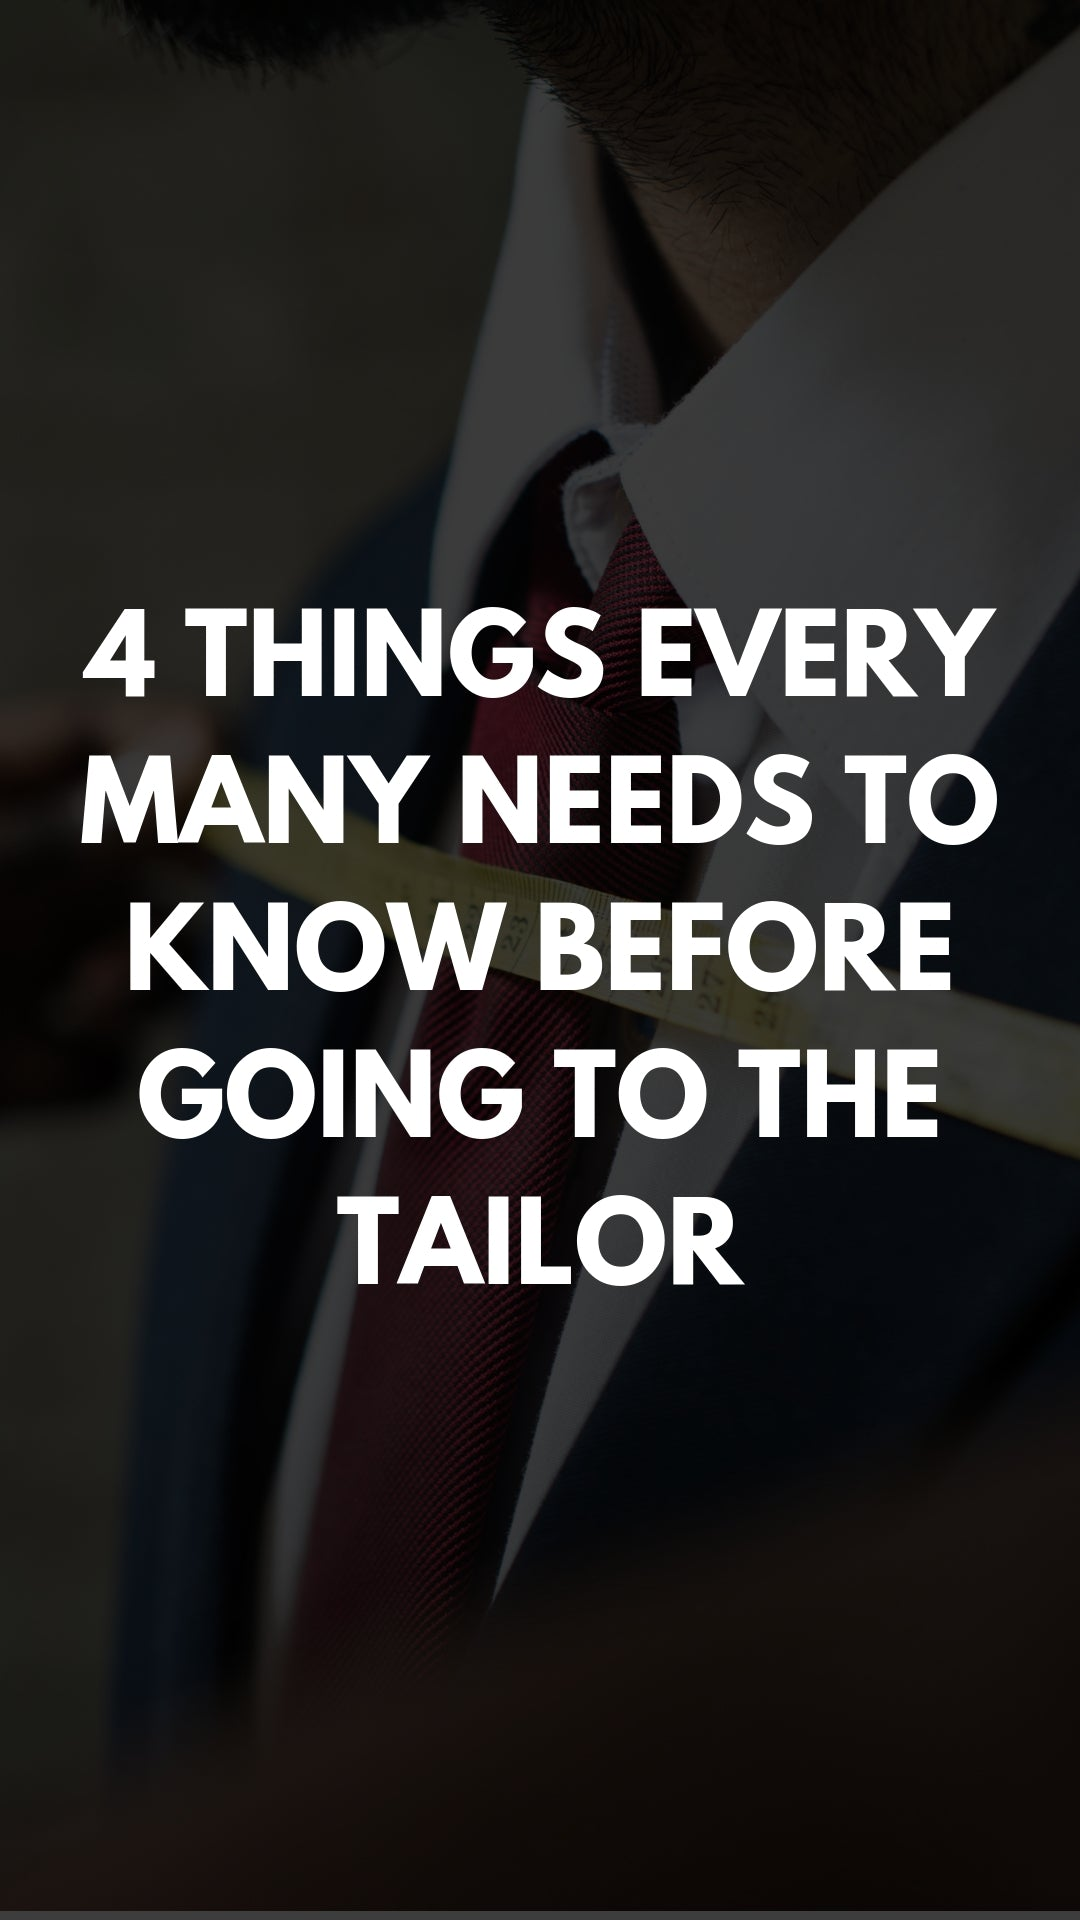 4 Things Every Many Needs to Know Before Going to the Tailor #mensfashion #tailoring